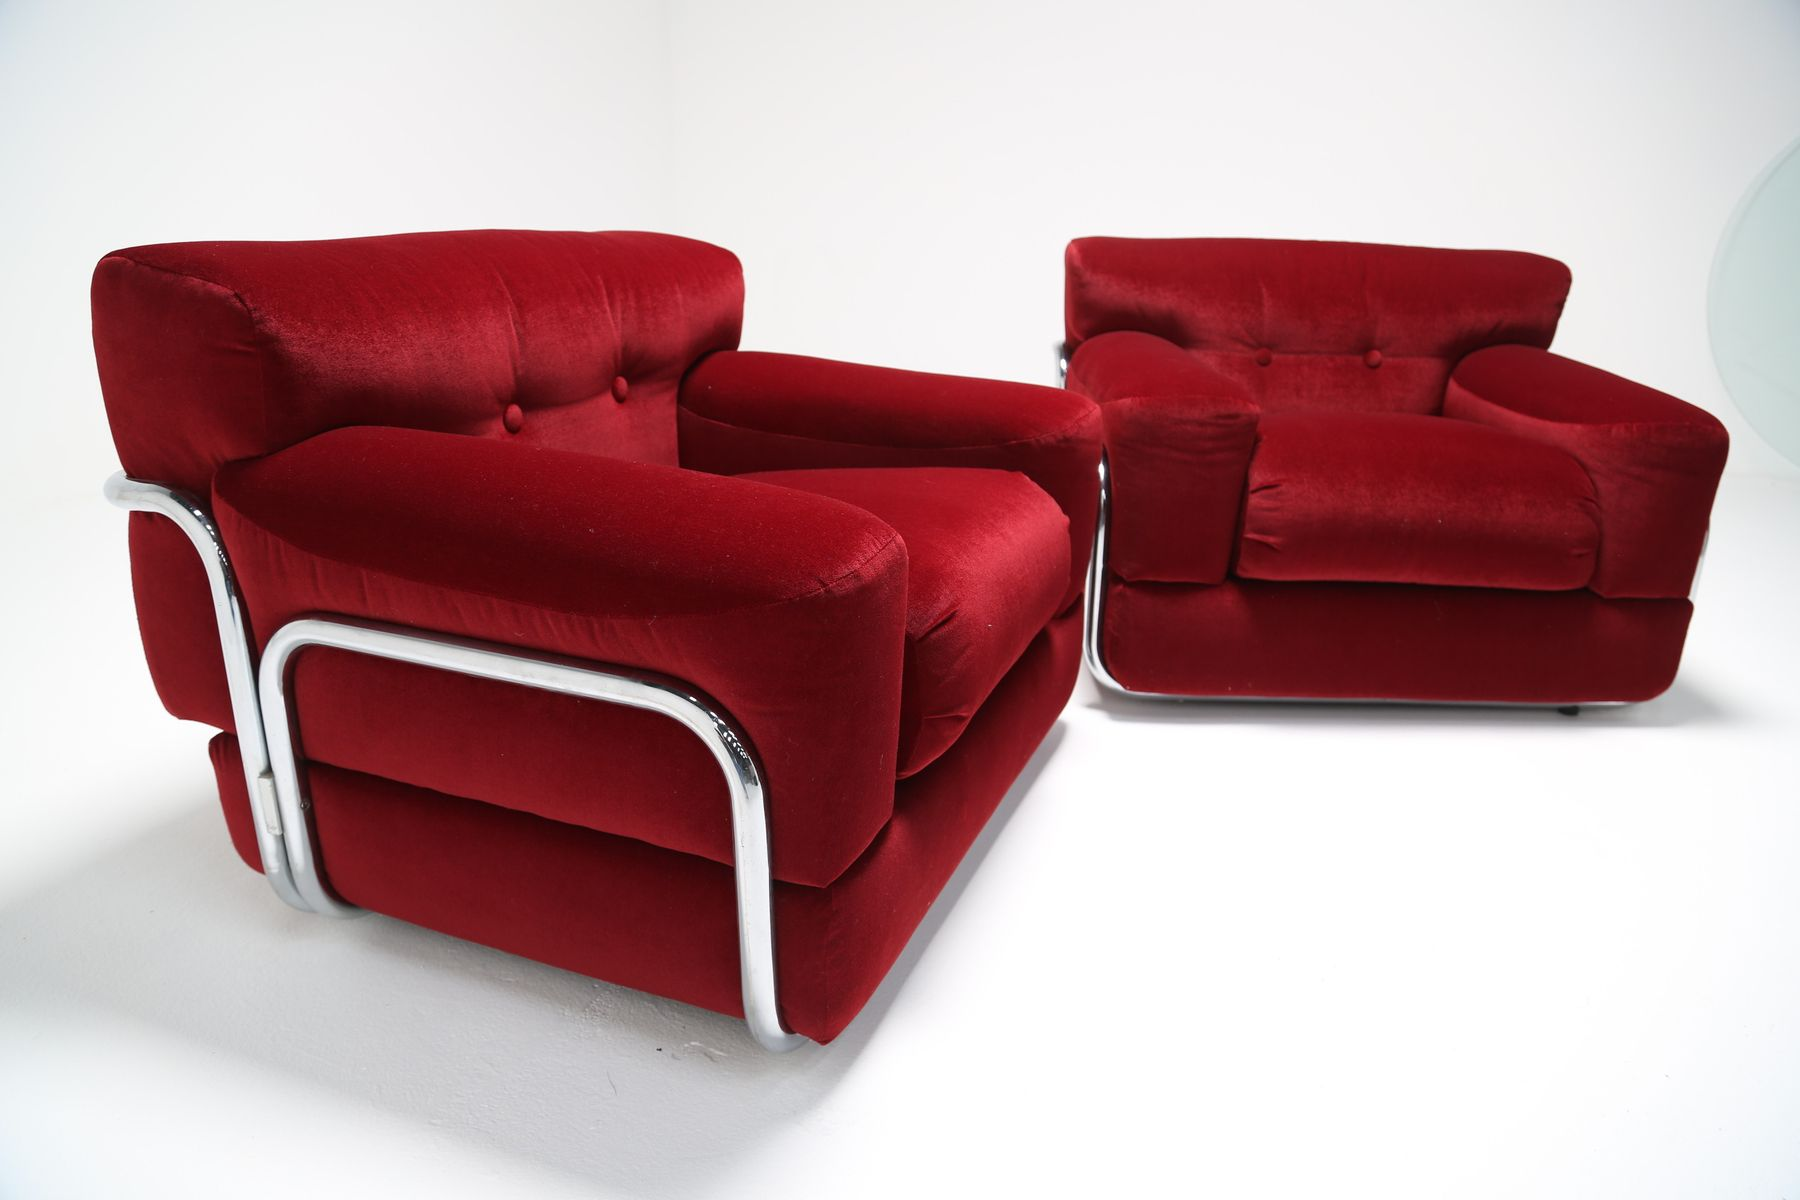 Red Velvet Lounge Chairs with Tubular Chrome Frame 1970s Set of